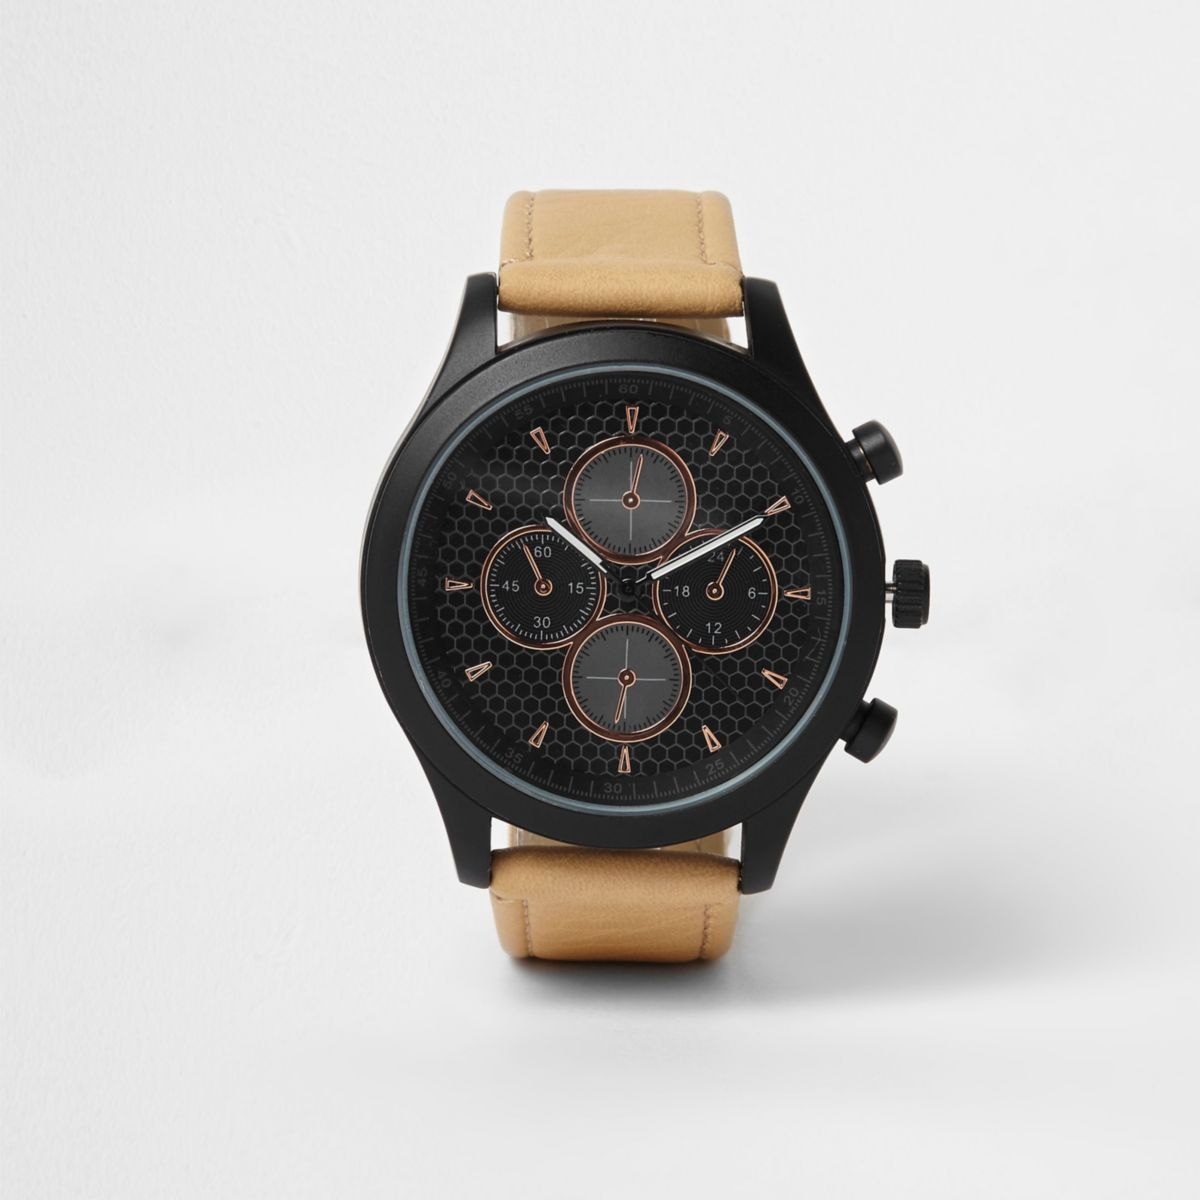 Light brown and black rose gold tone watch